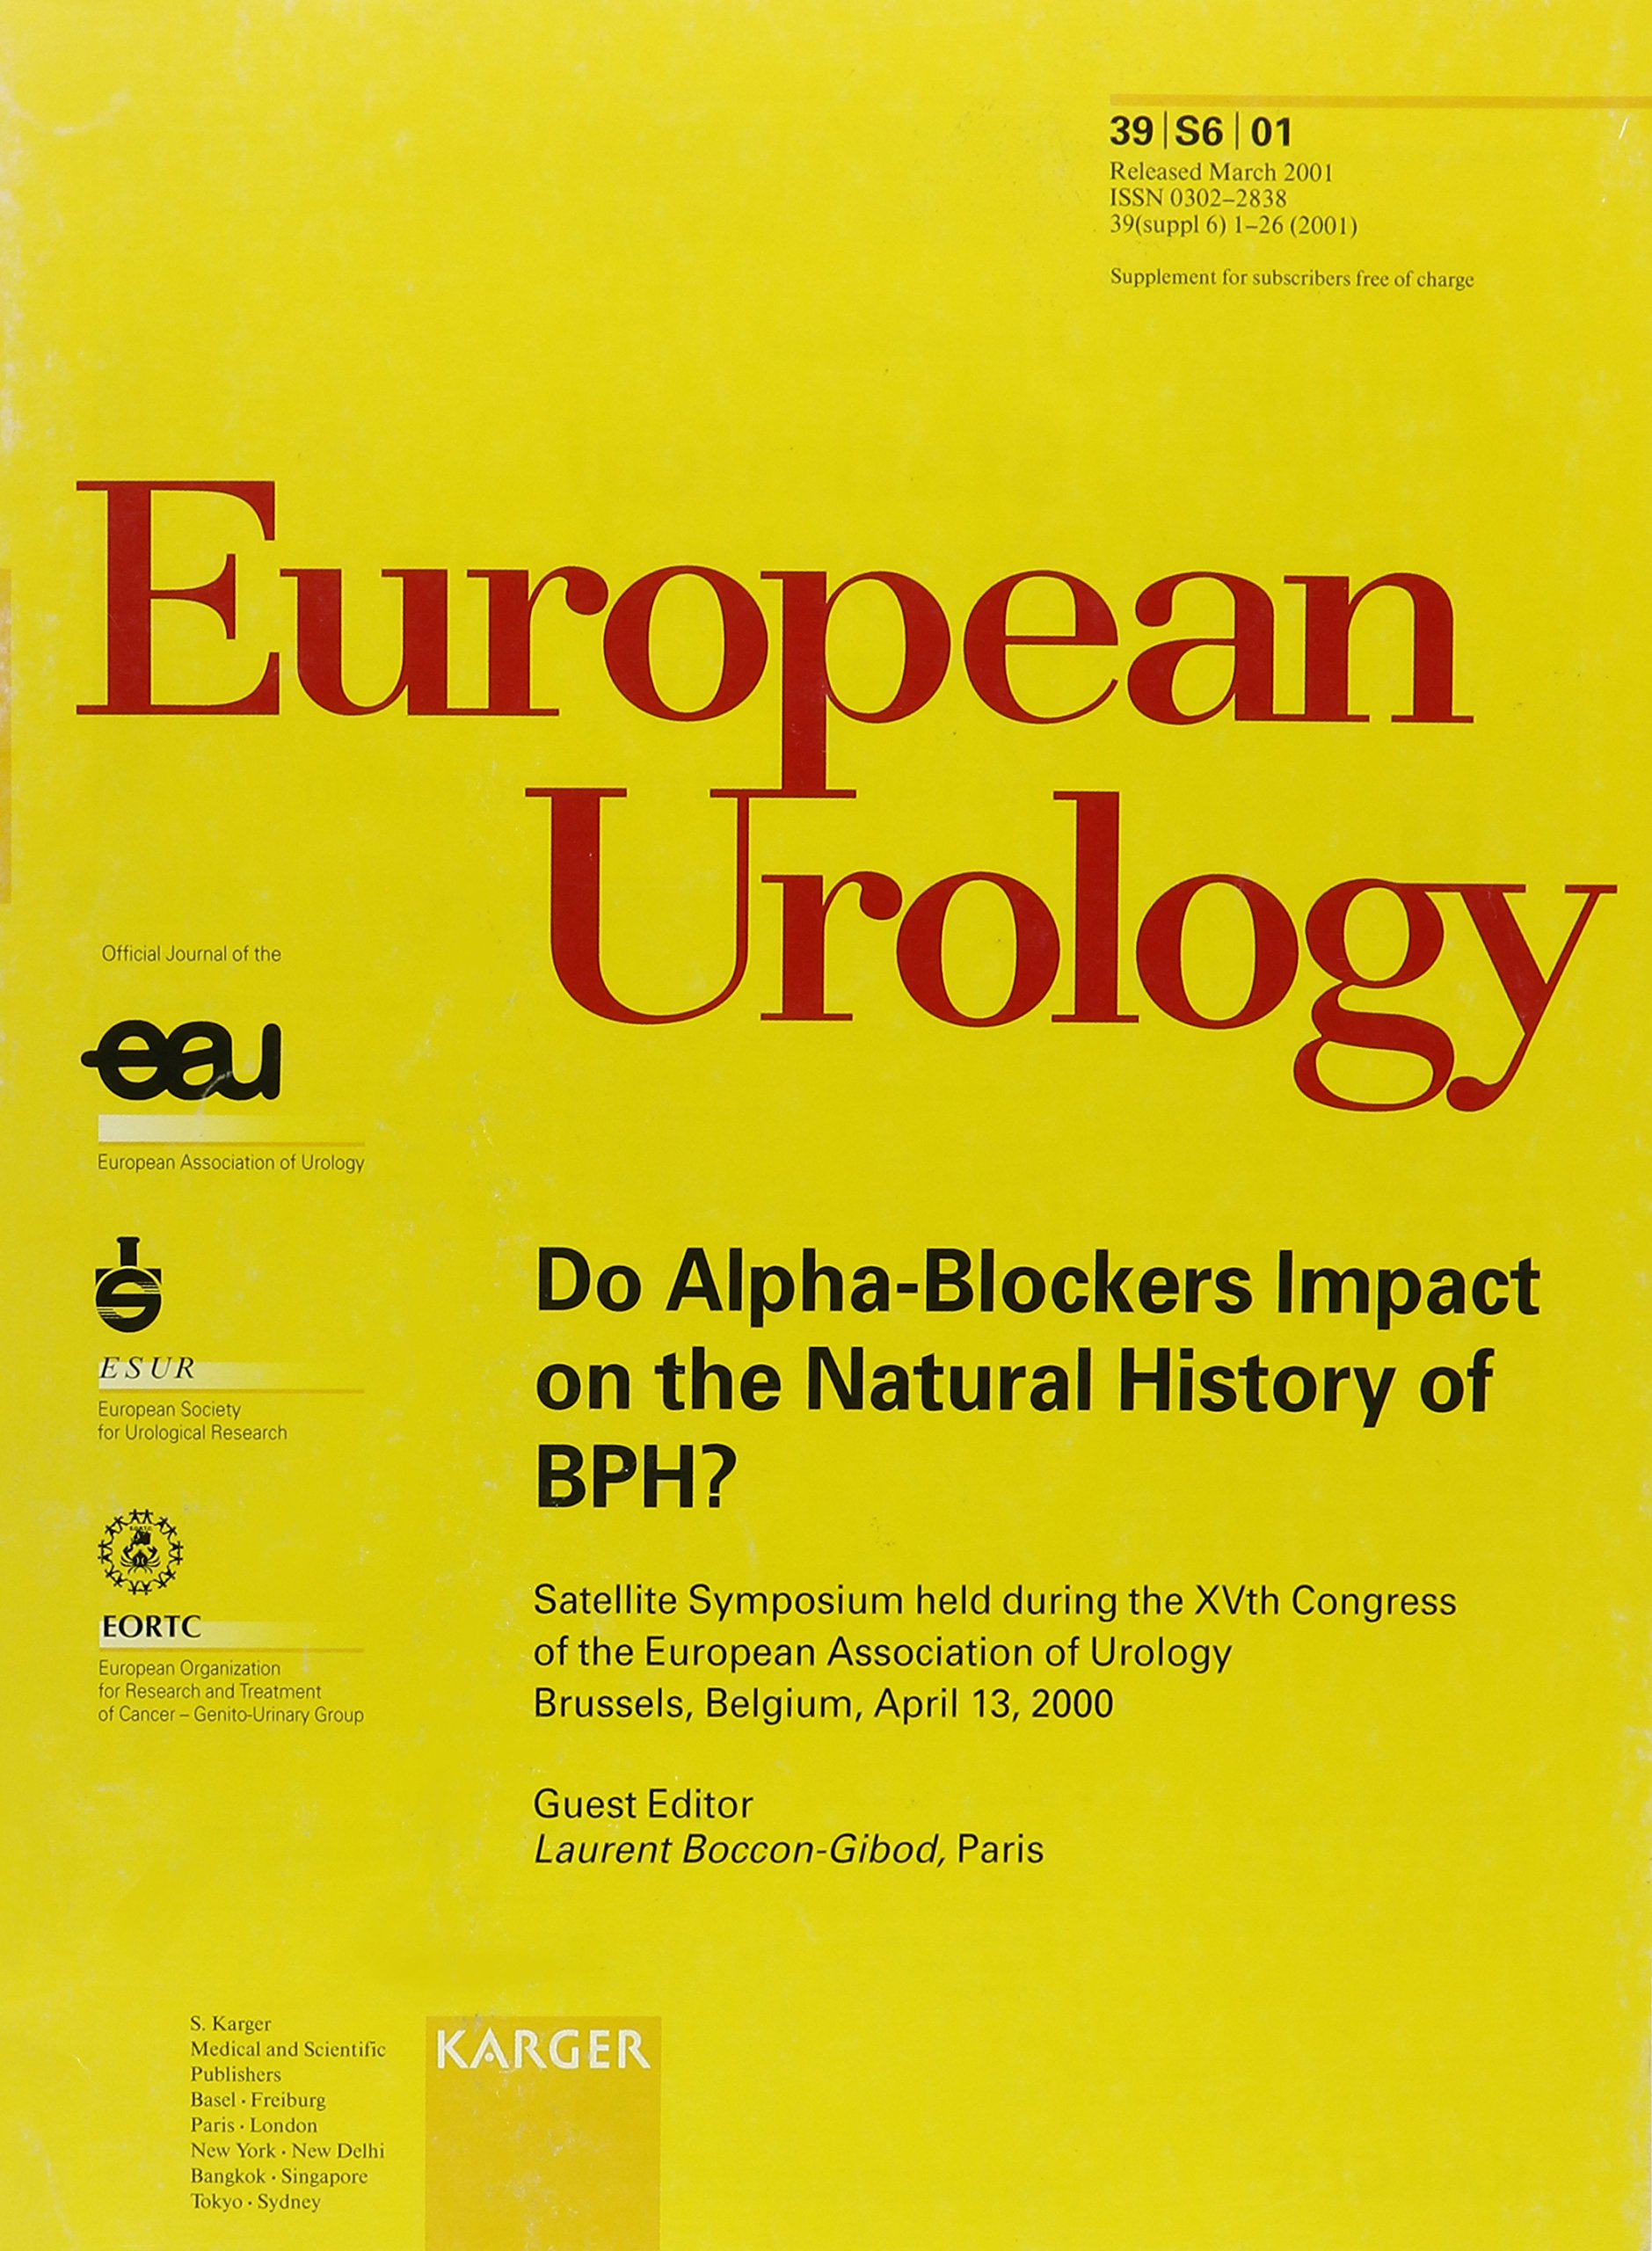 Do Alpha-Blockers Impact on the Natural History of BPH?: Satellite Symposium held during the 15th Congress of the European Association of Urology, ... (Supplement Issue: European Urology 2001) ebook